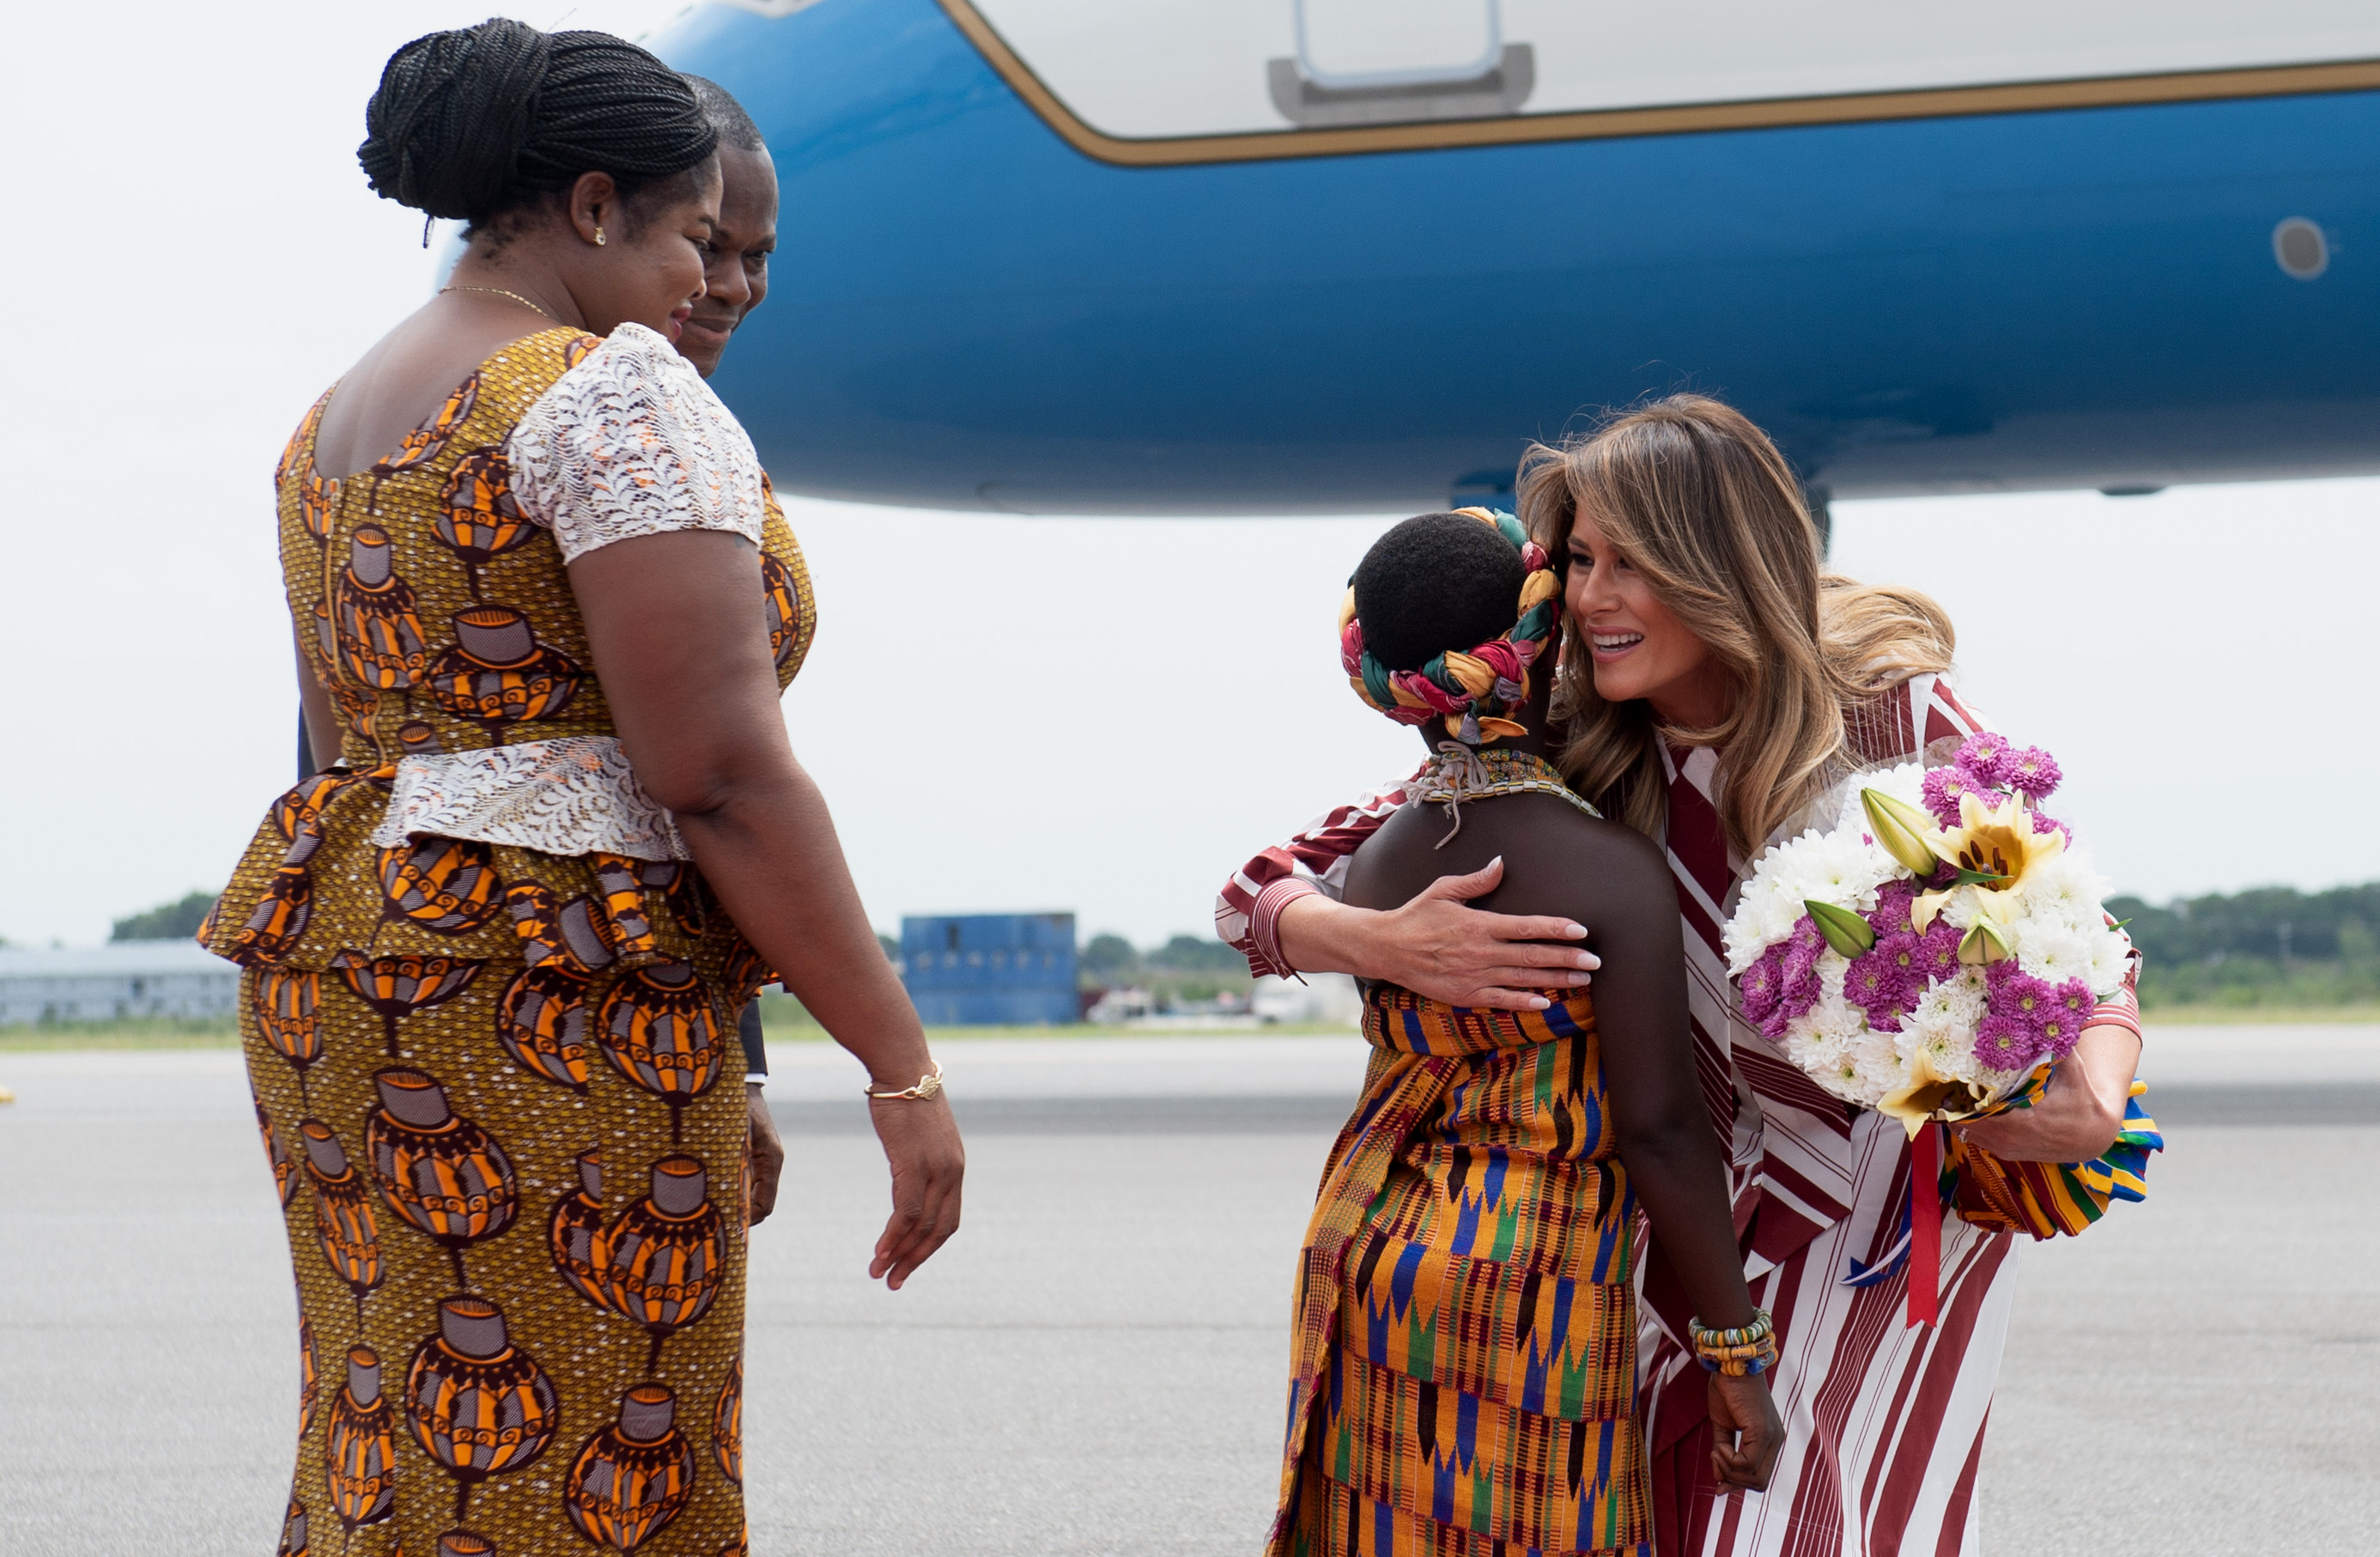 First lady Melania Trump receives flowers during an arrival ceremony after landing at Kotoka International Airport in Accra October 2, 2018 as she begins her week long trip to Africa to promote her 'Be Best' campaign. (Photo: SAUL LOEB/AFP/Getty Images)